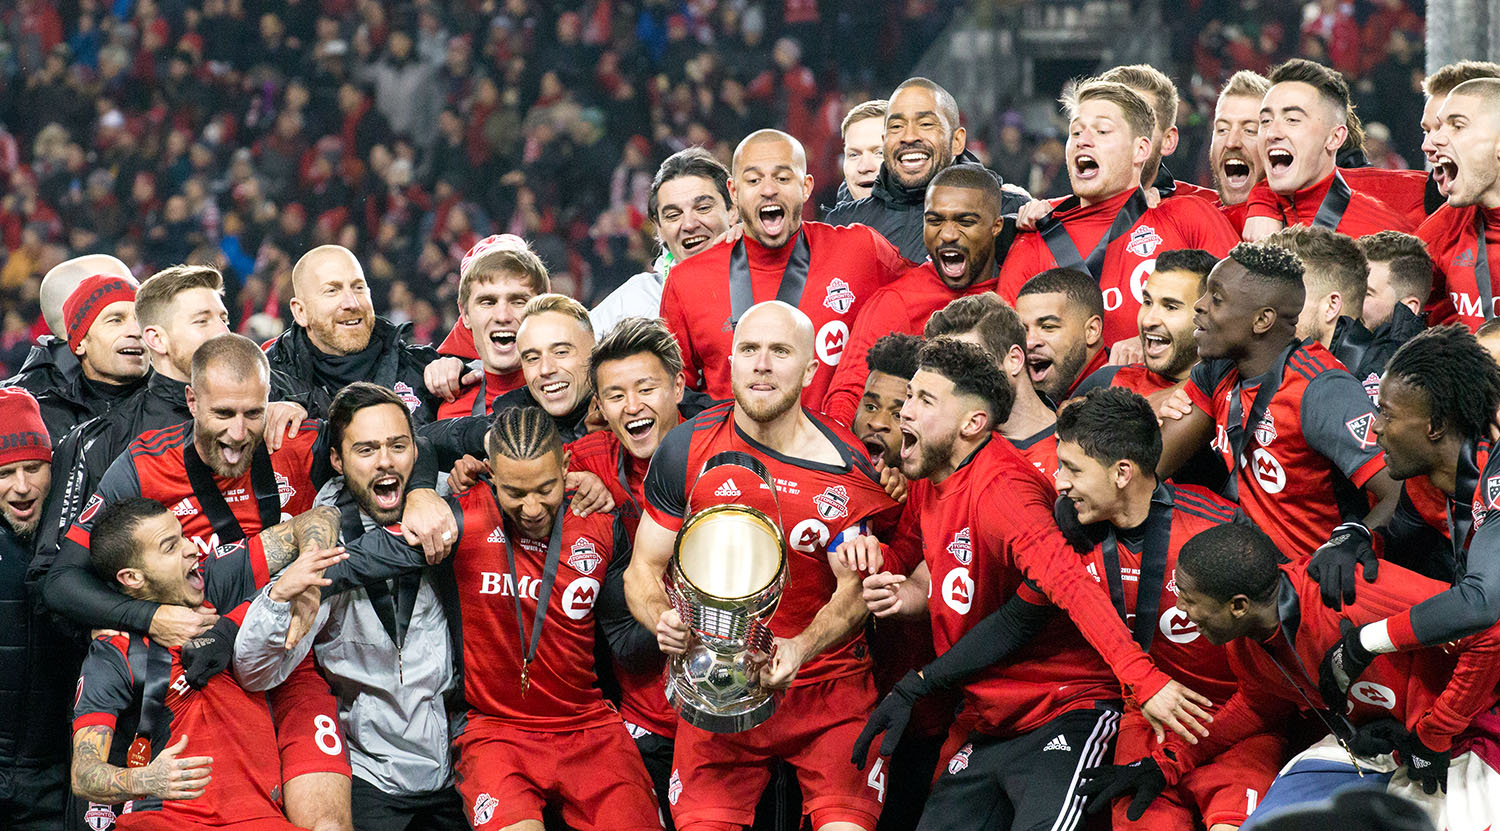 Michael Bradley about to lift the 2017 MLS Cup trophy at BMO Field after winning 2-0.Image by Dennis Marciniak of denMAR Media.